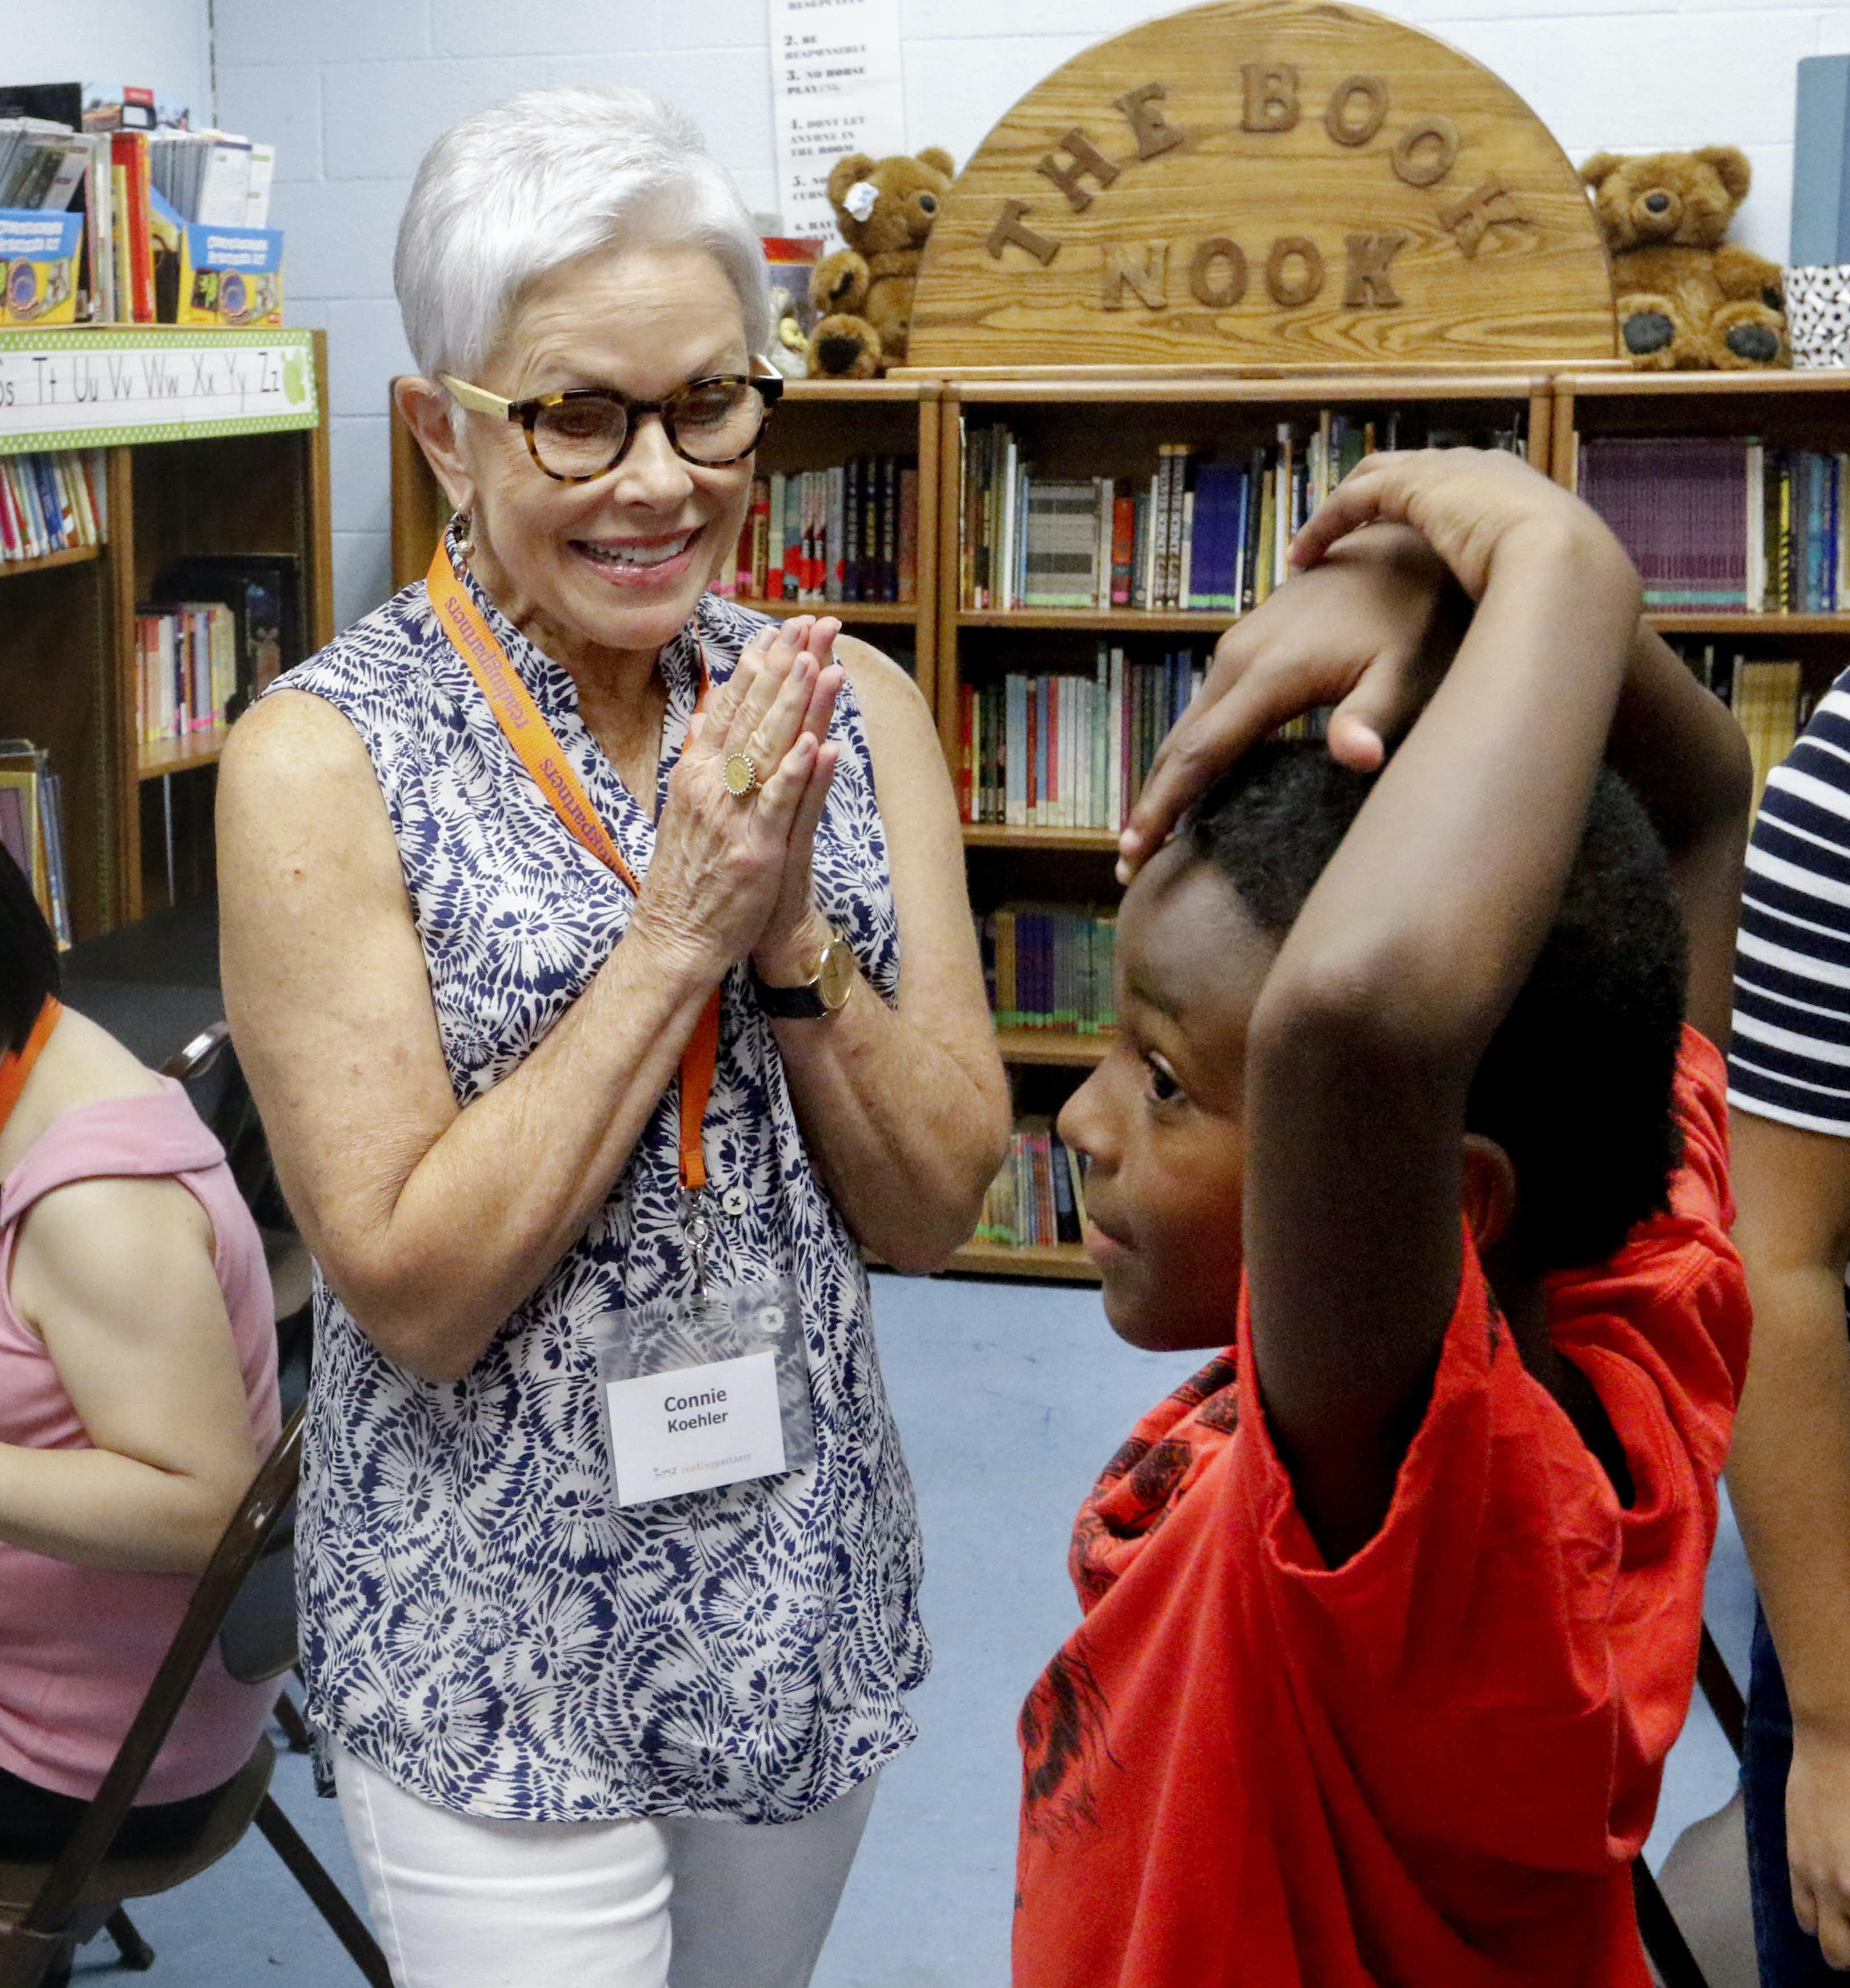 Connie Koehler, 65, a volunteer with Reading Partners, visits with Bradley Williams, 7, before their tutoring session at the Como Community Center in Fort Worth. (Ron Baselice/Staff Photographer)